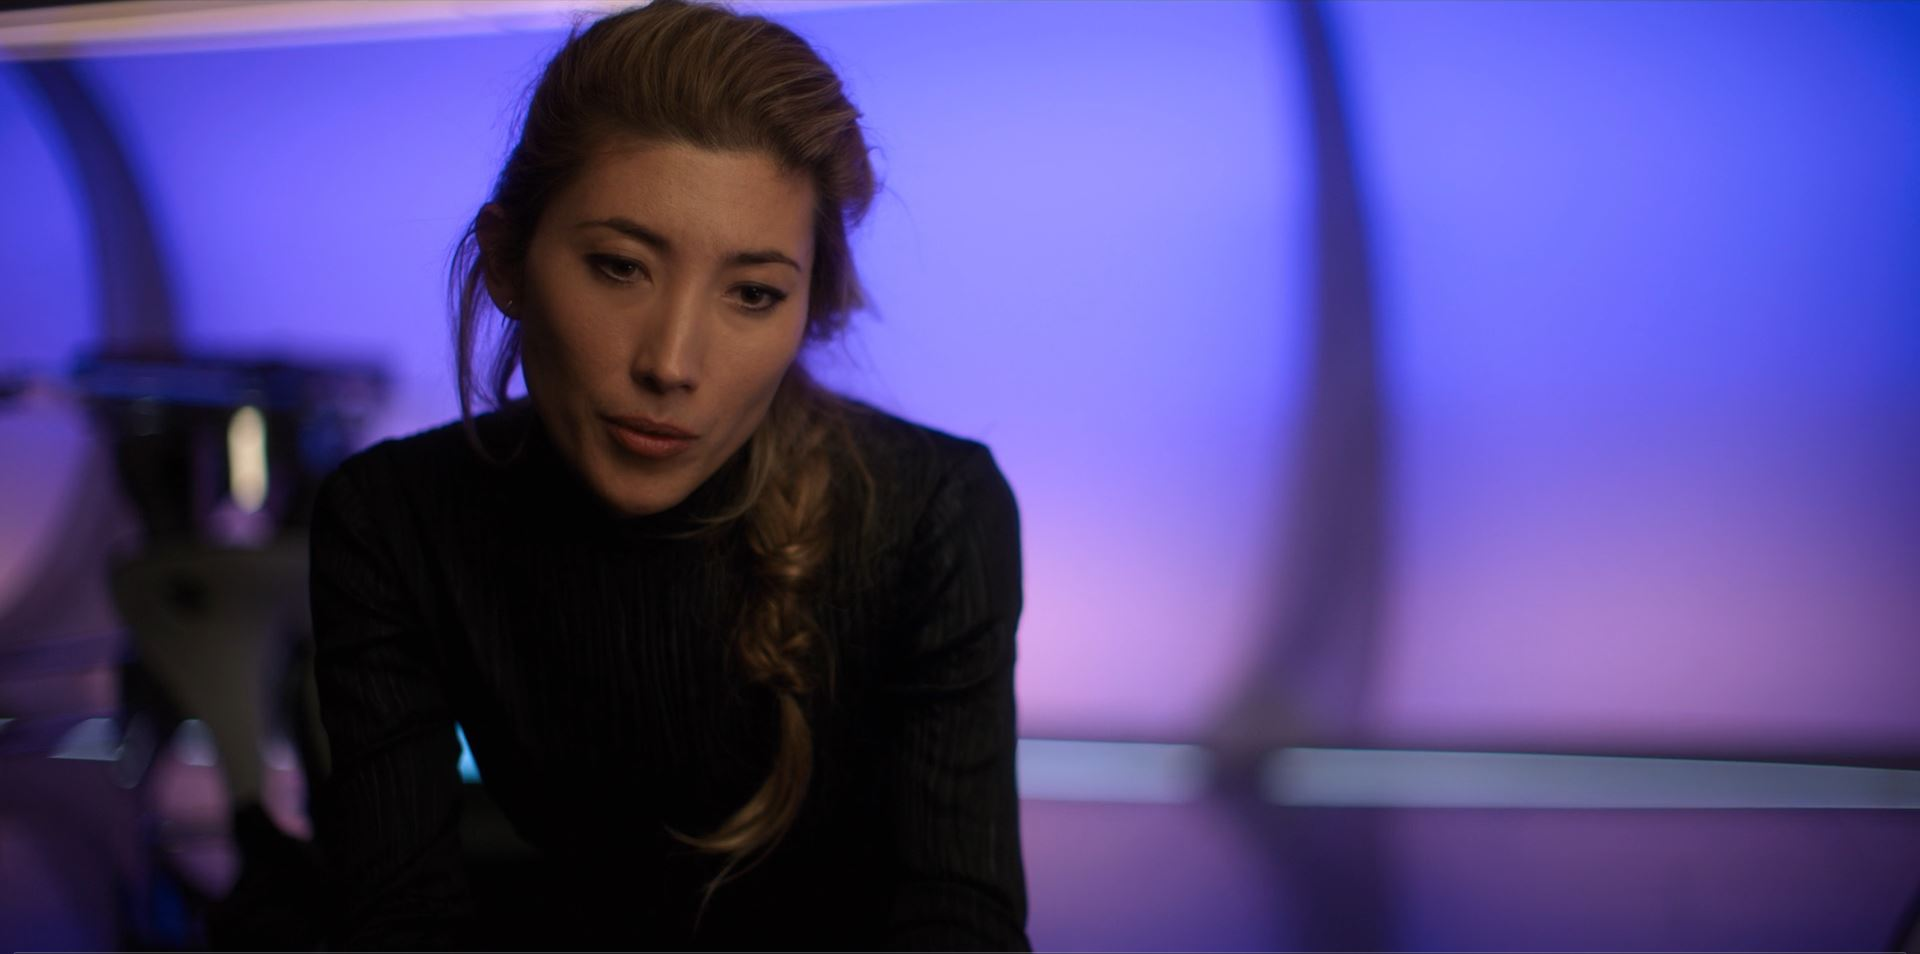 Altered Carbon - Reileen Kawahara (Dichen Lachman)